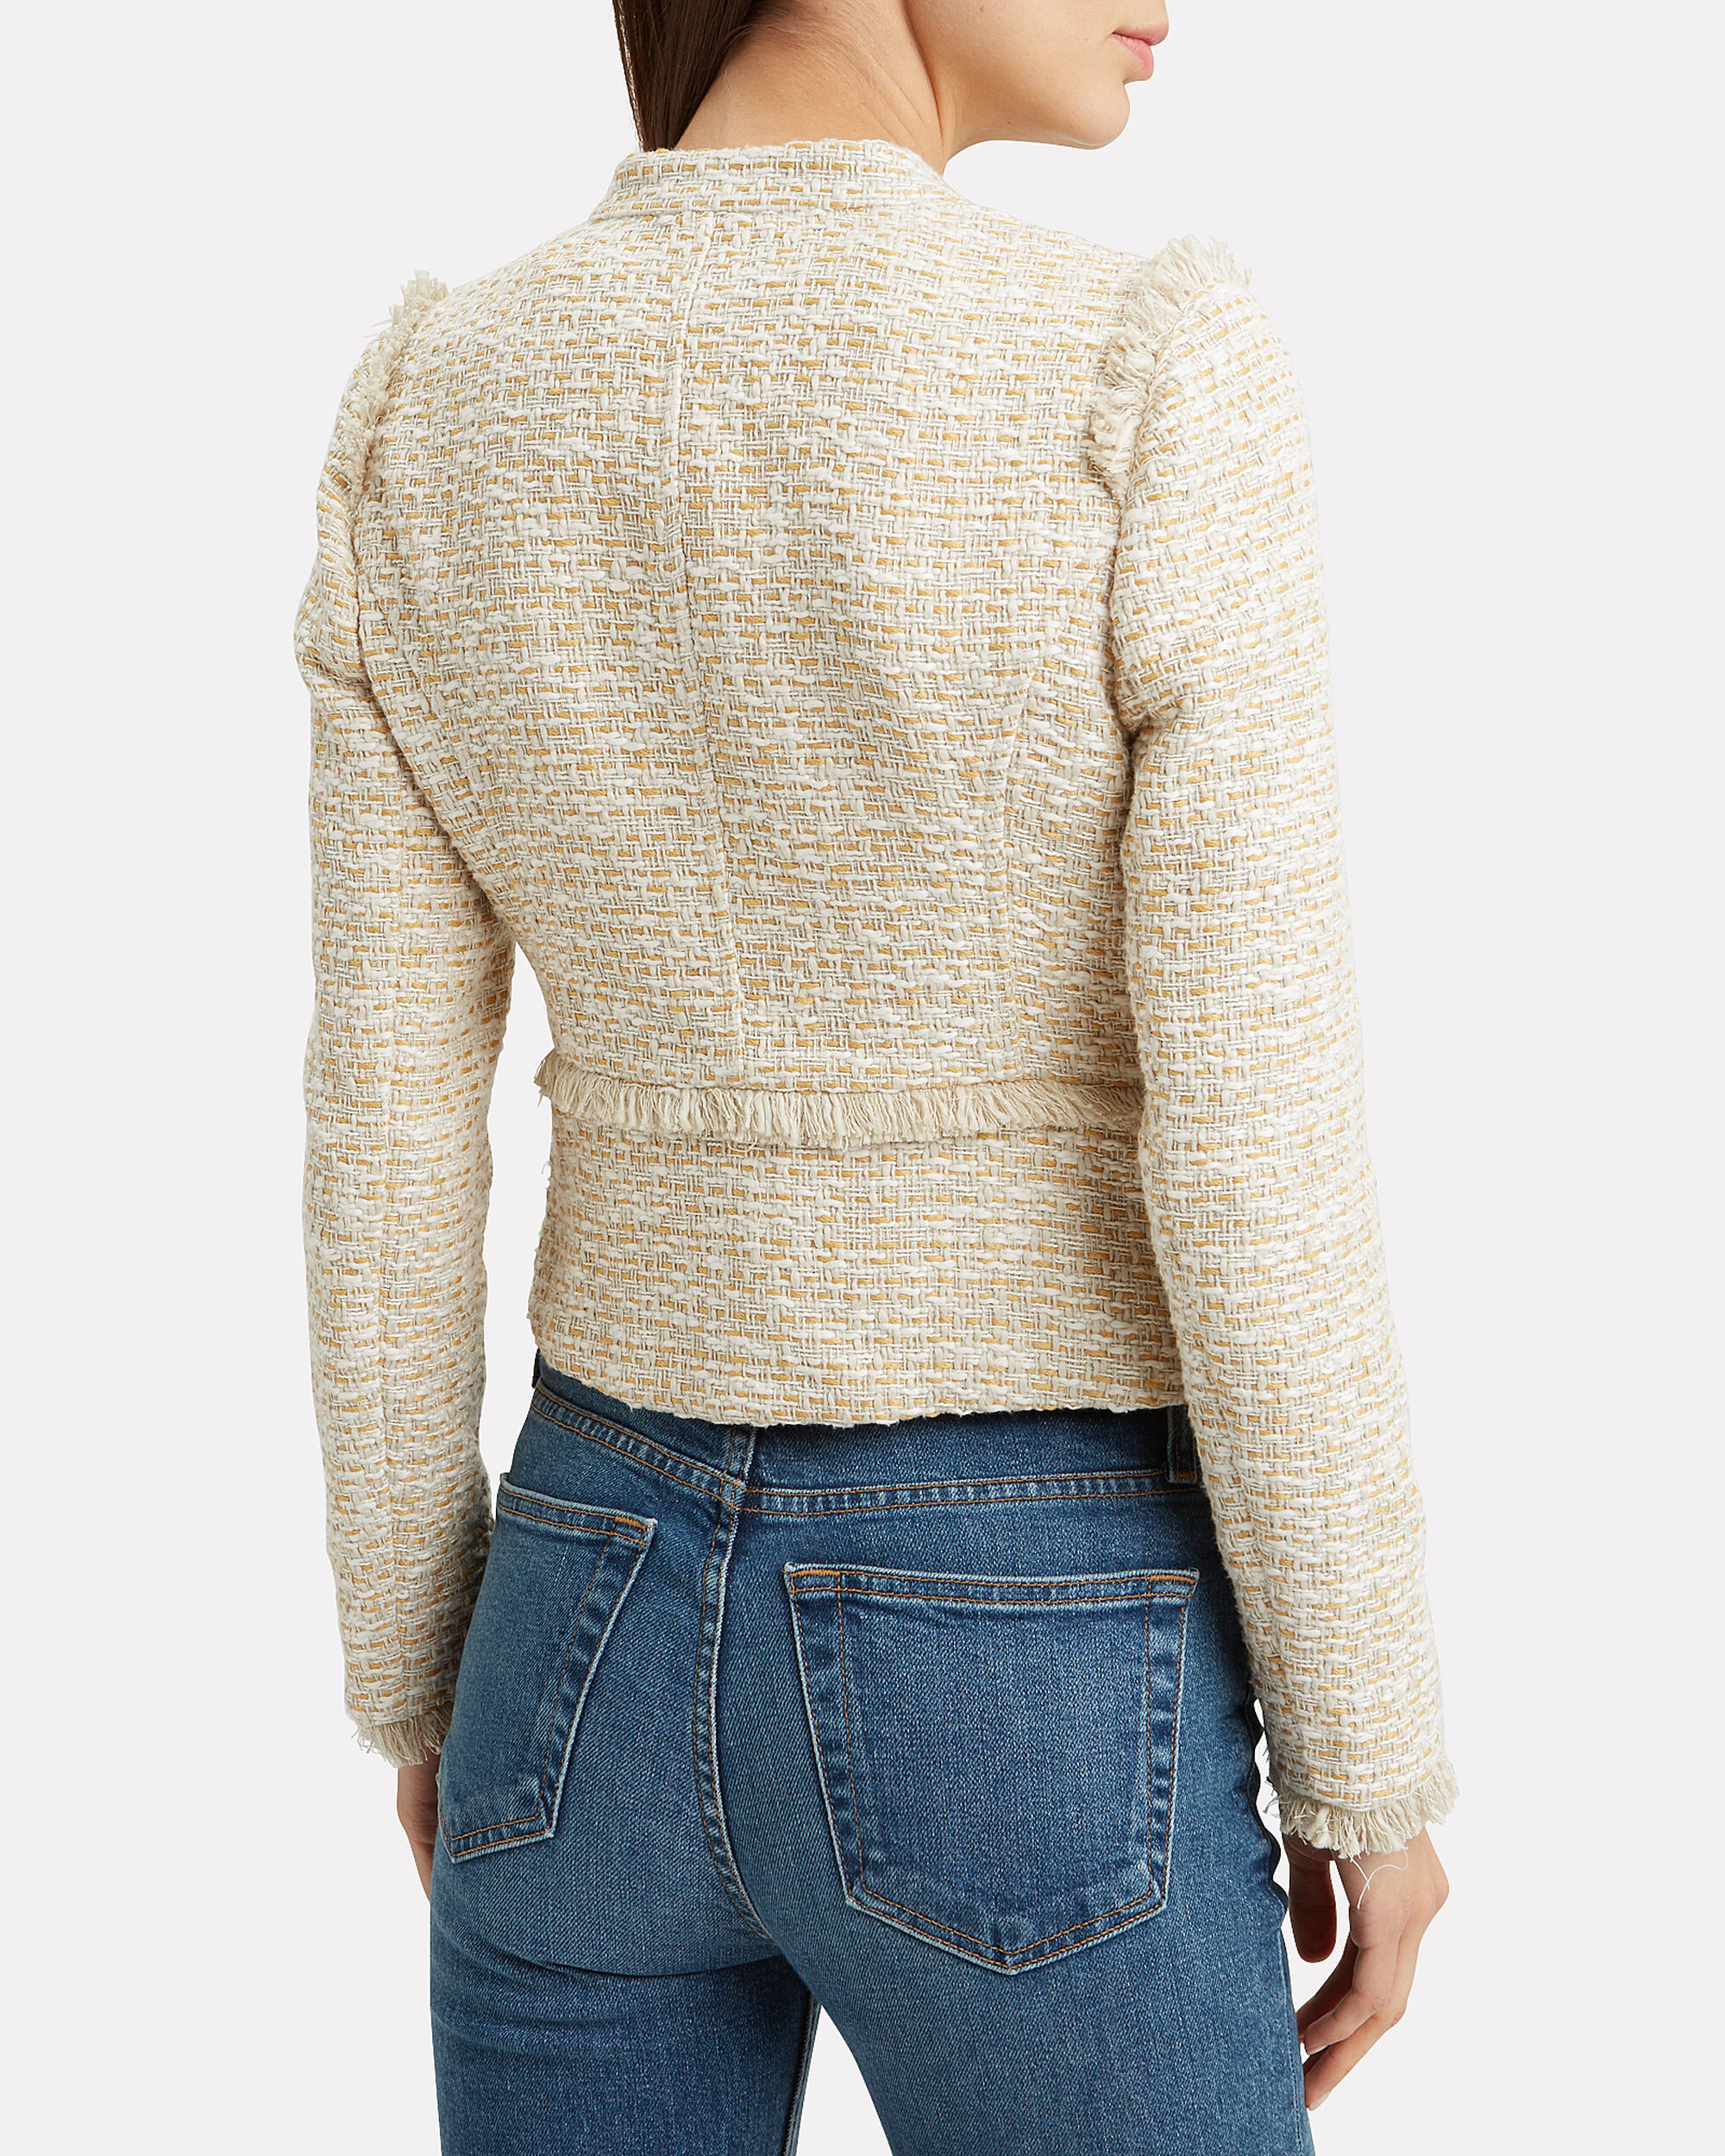 Mona Knit Jacket, BEIGE, hi-res